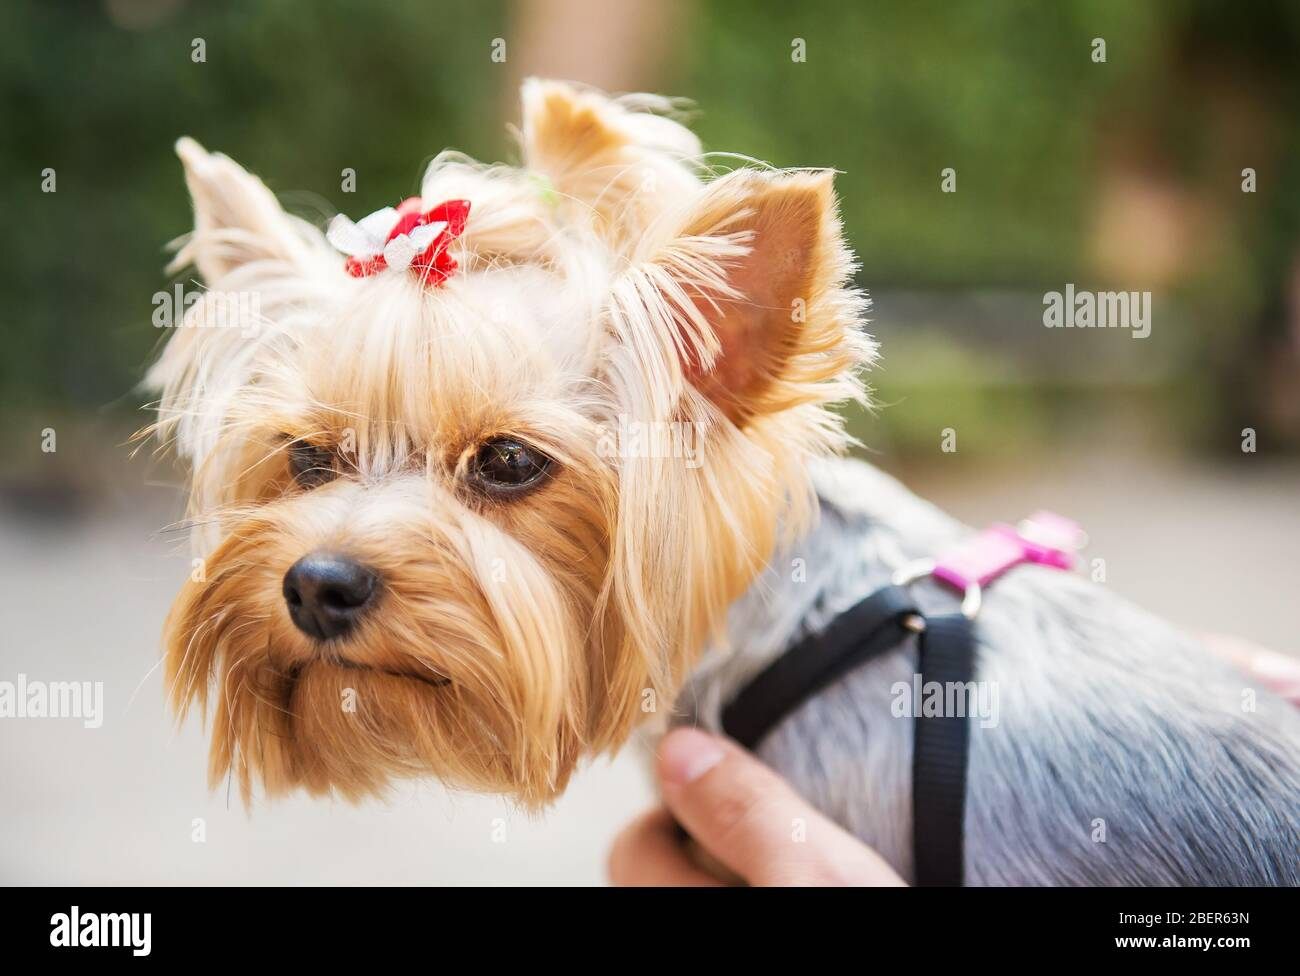 Page 2 Biewer High Resolution Stock Photography And Images Alamy